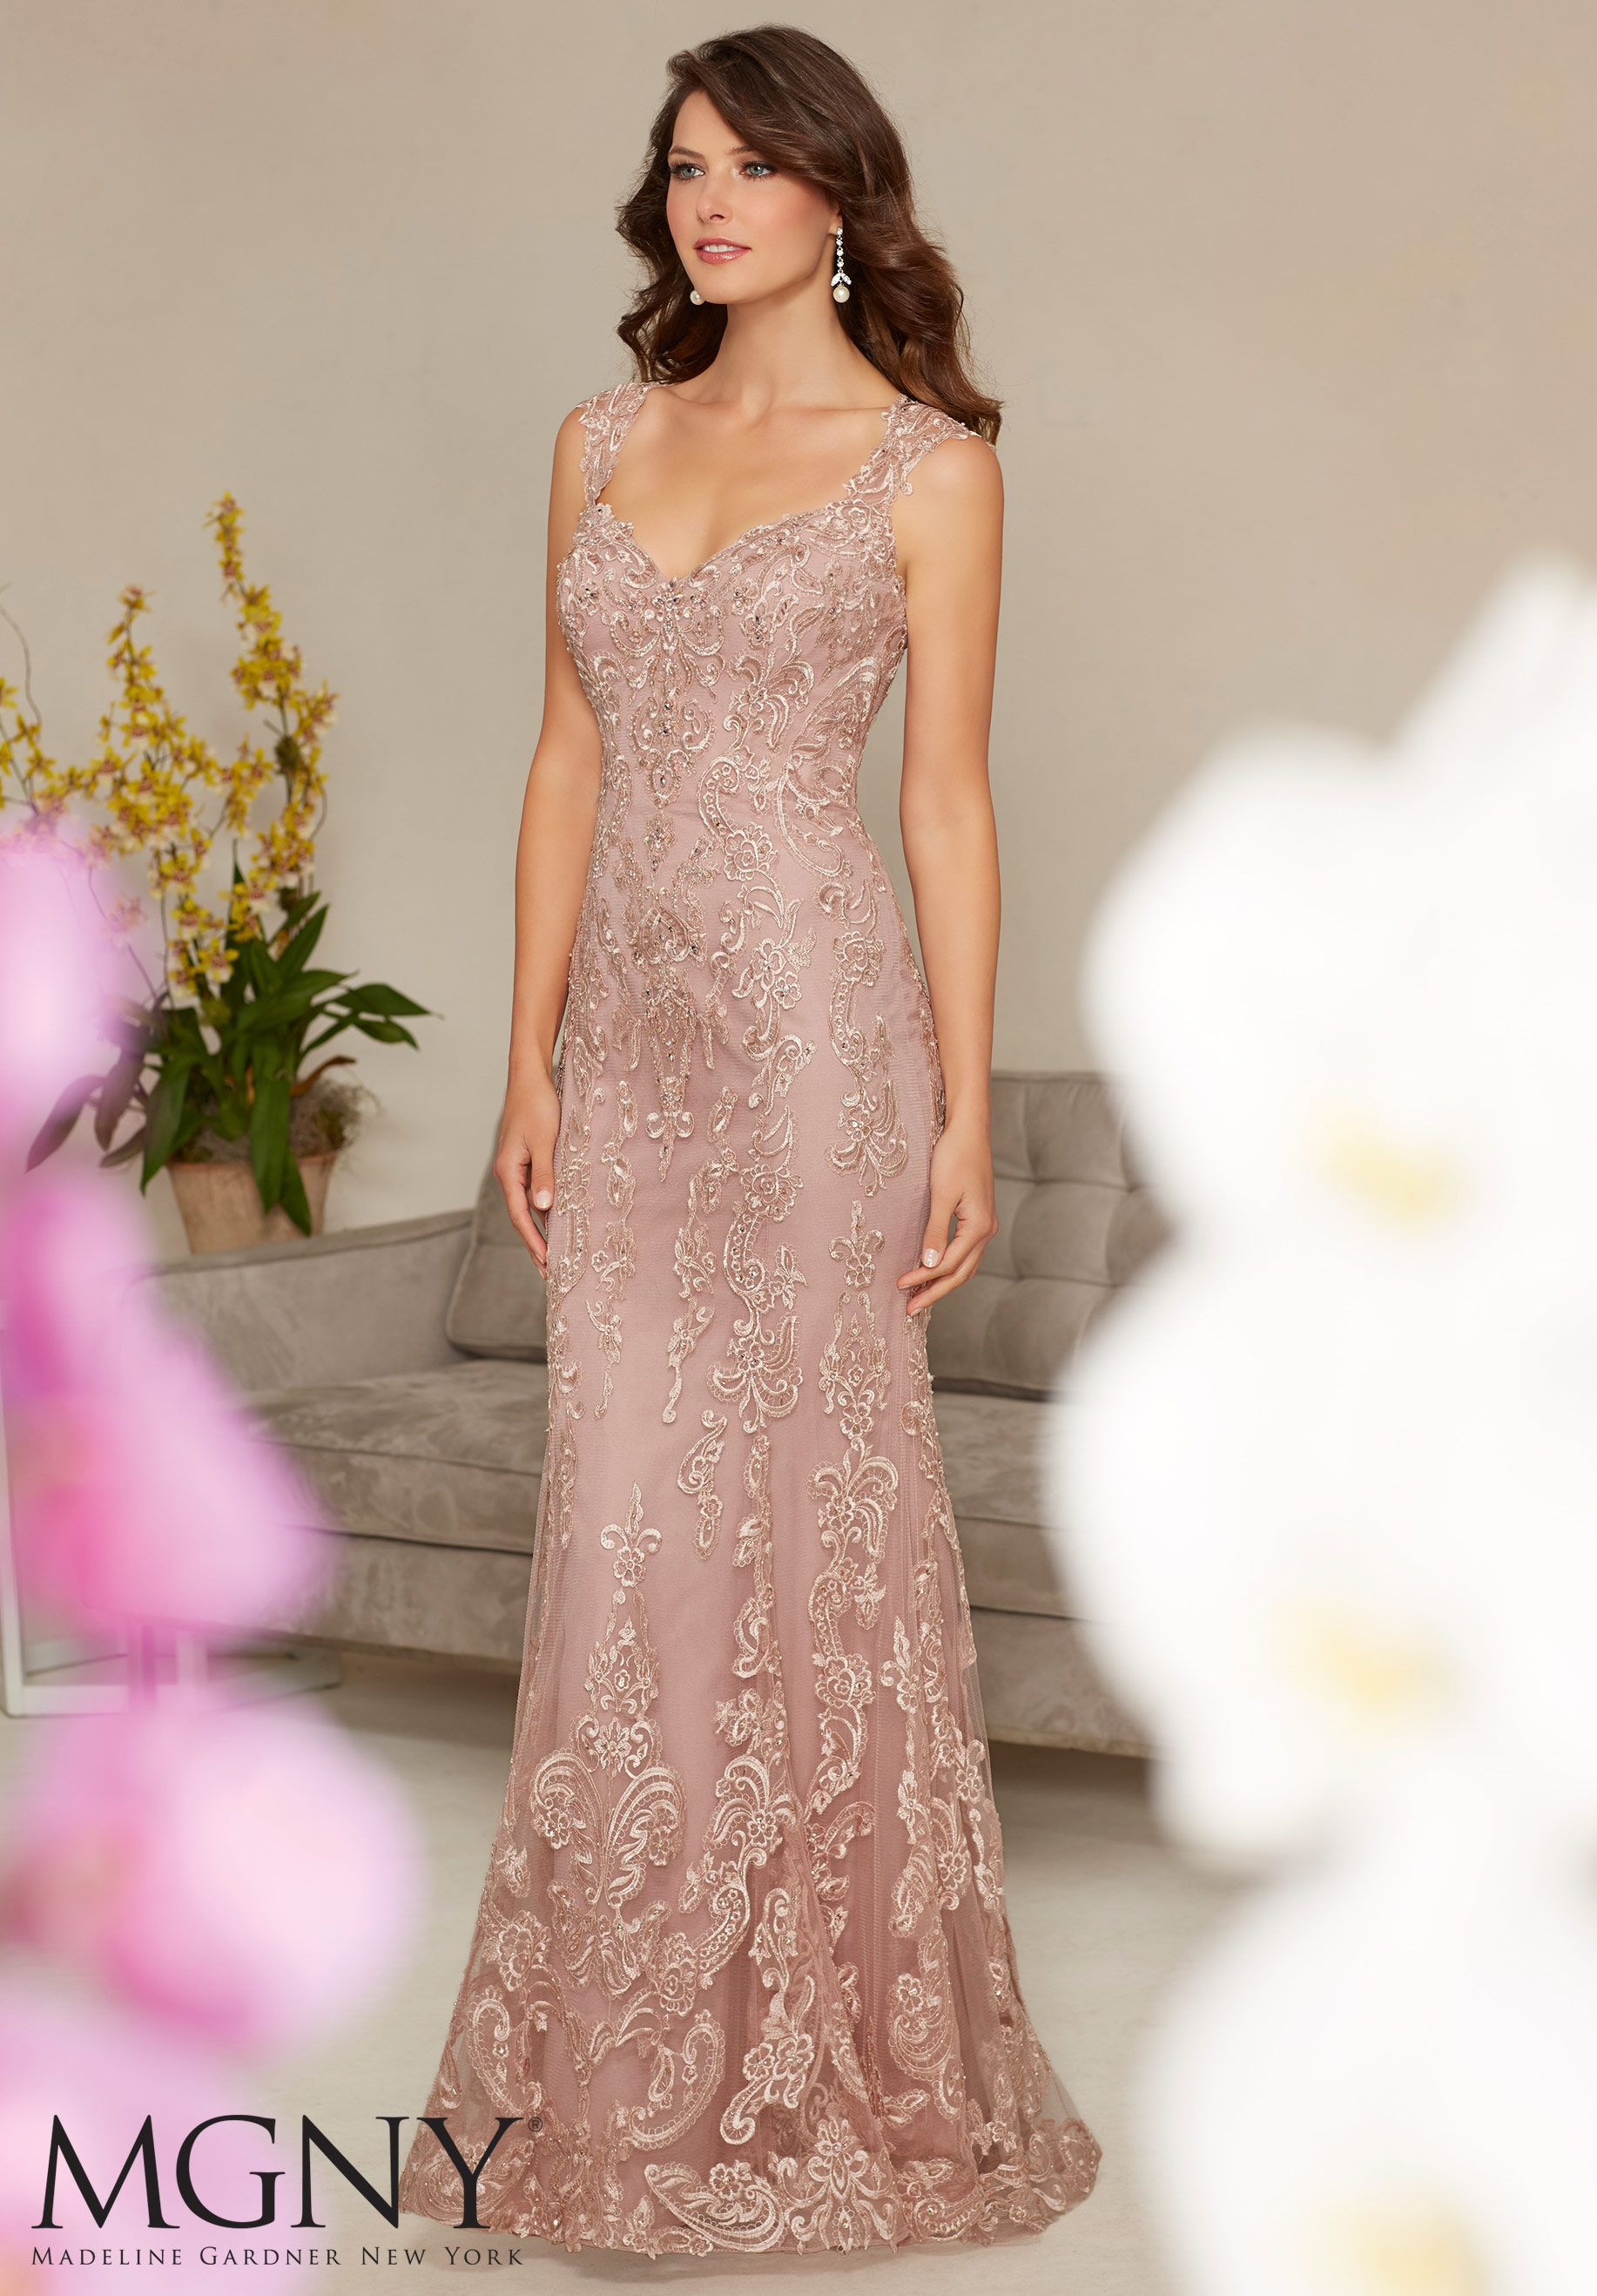 cd41ff7873 Net with Beaded and Embroidered Appliqués Evening Gown Mother of the Bride  Dress Designed by Madeline Gardner. Colors available  Mocha